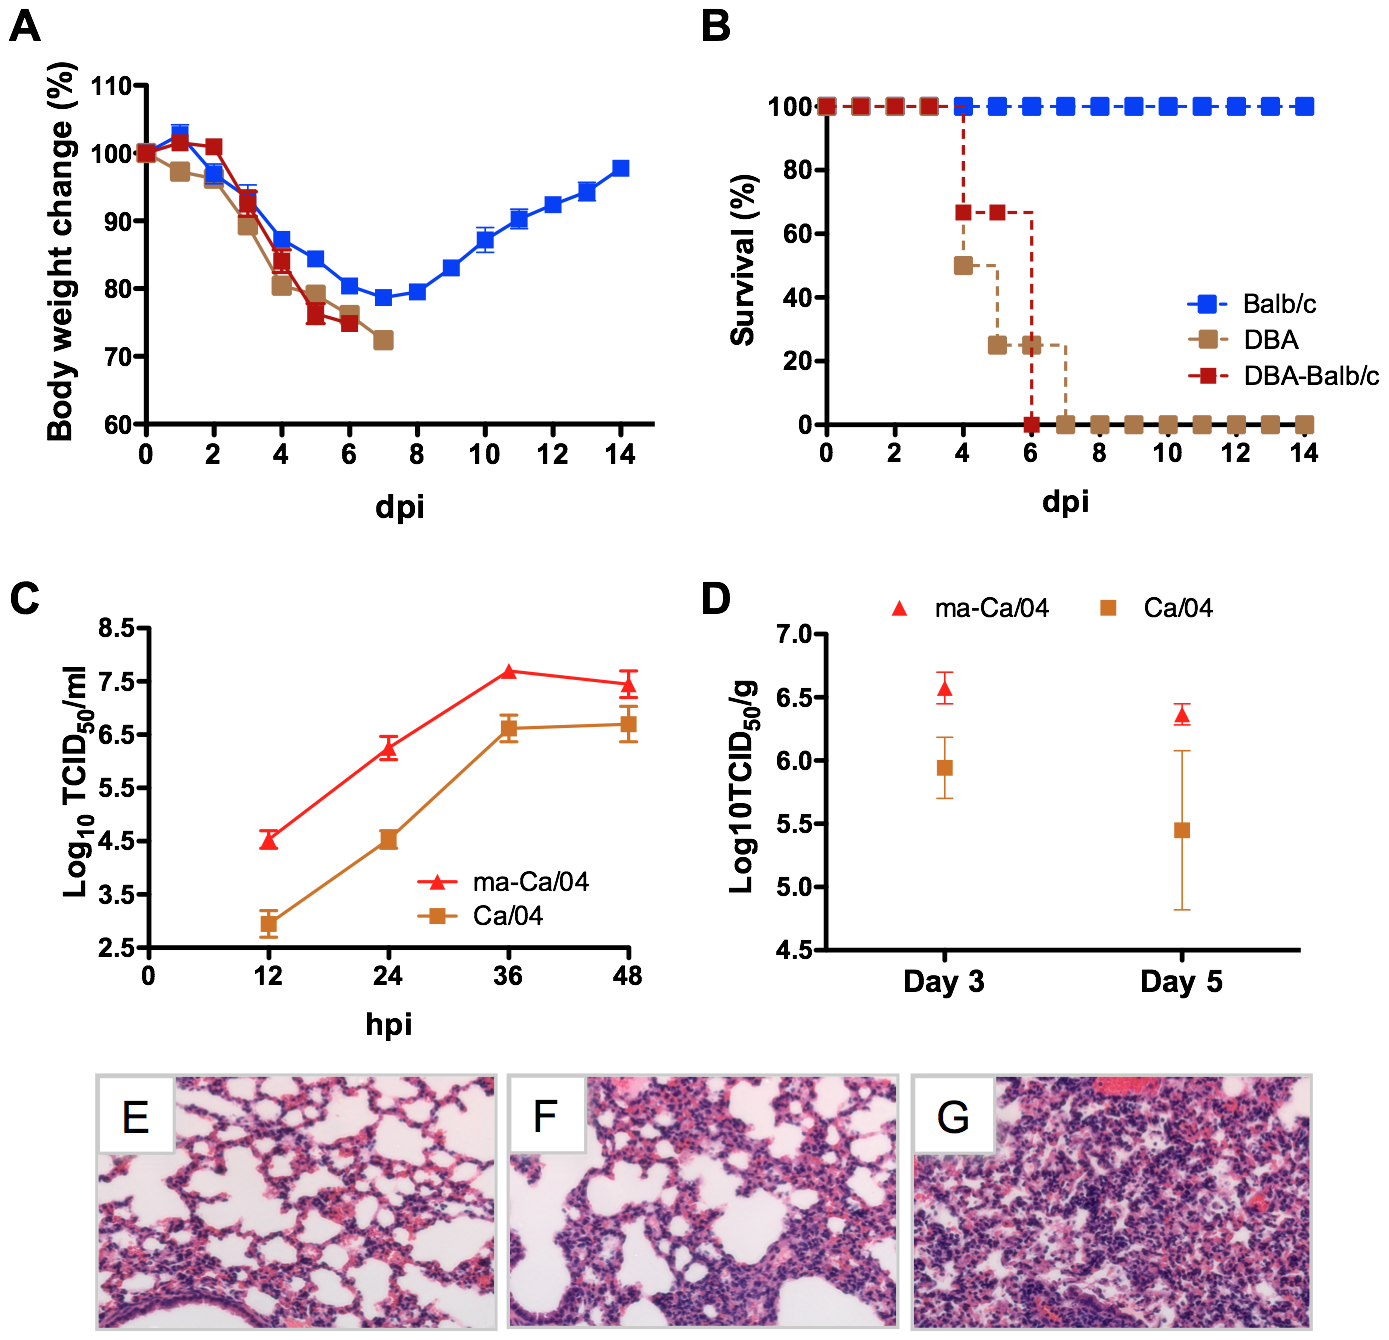 Generation of an H1N1pdm virus lethal for Balb/c mice.